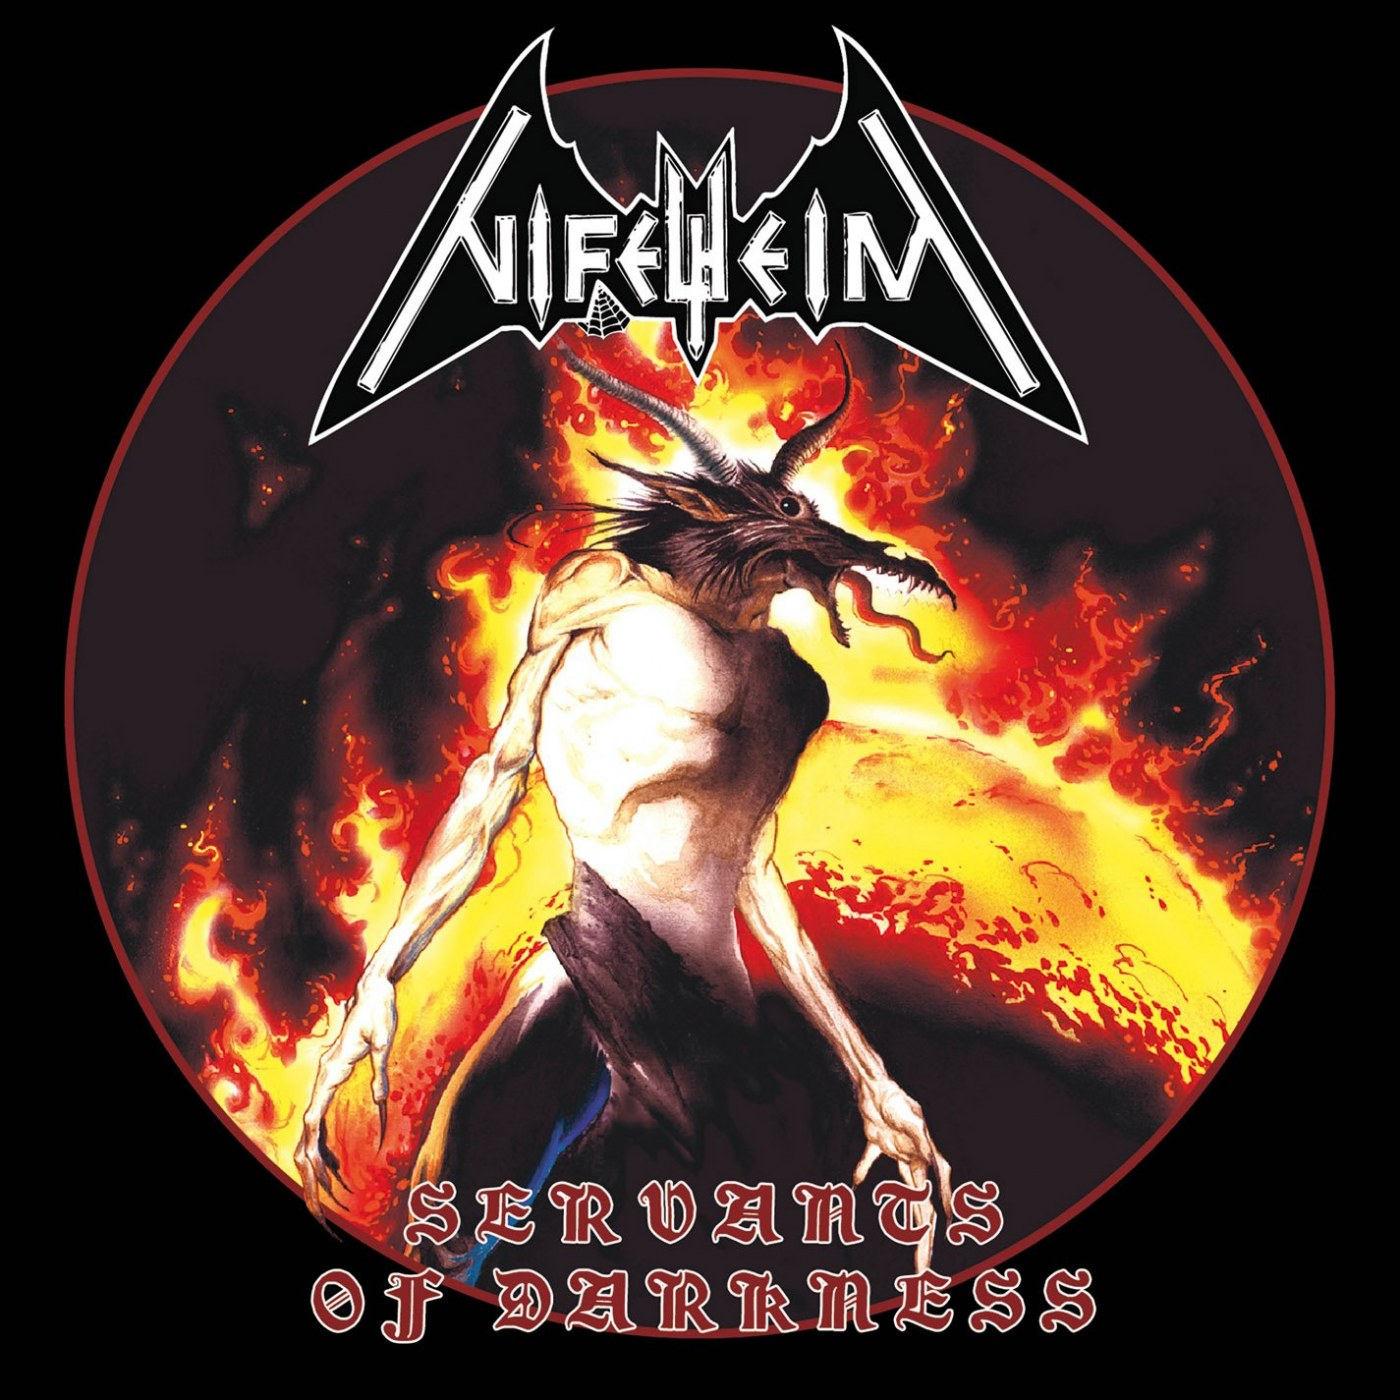 Review for Nifelheim - Servants of Darkness